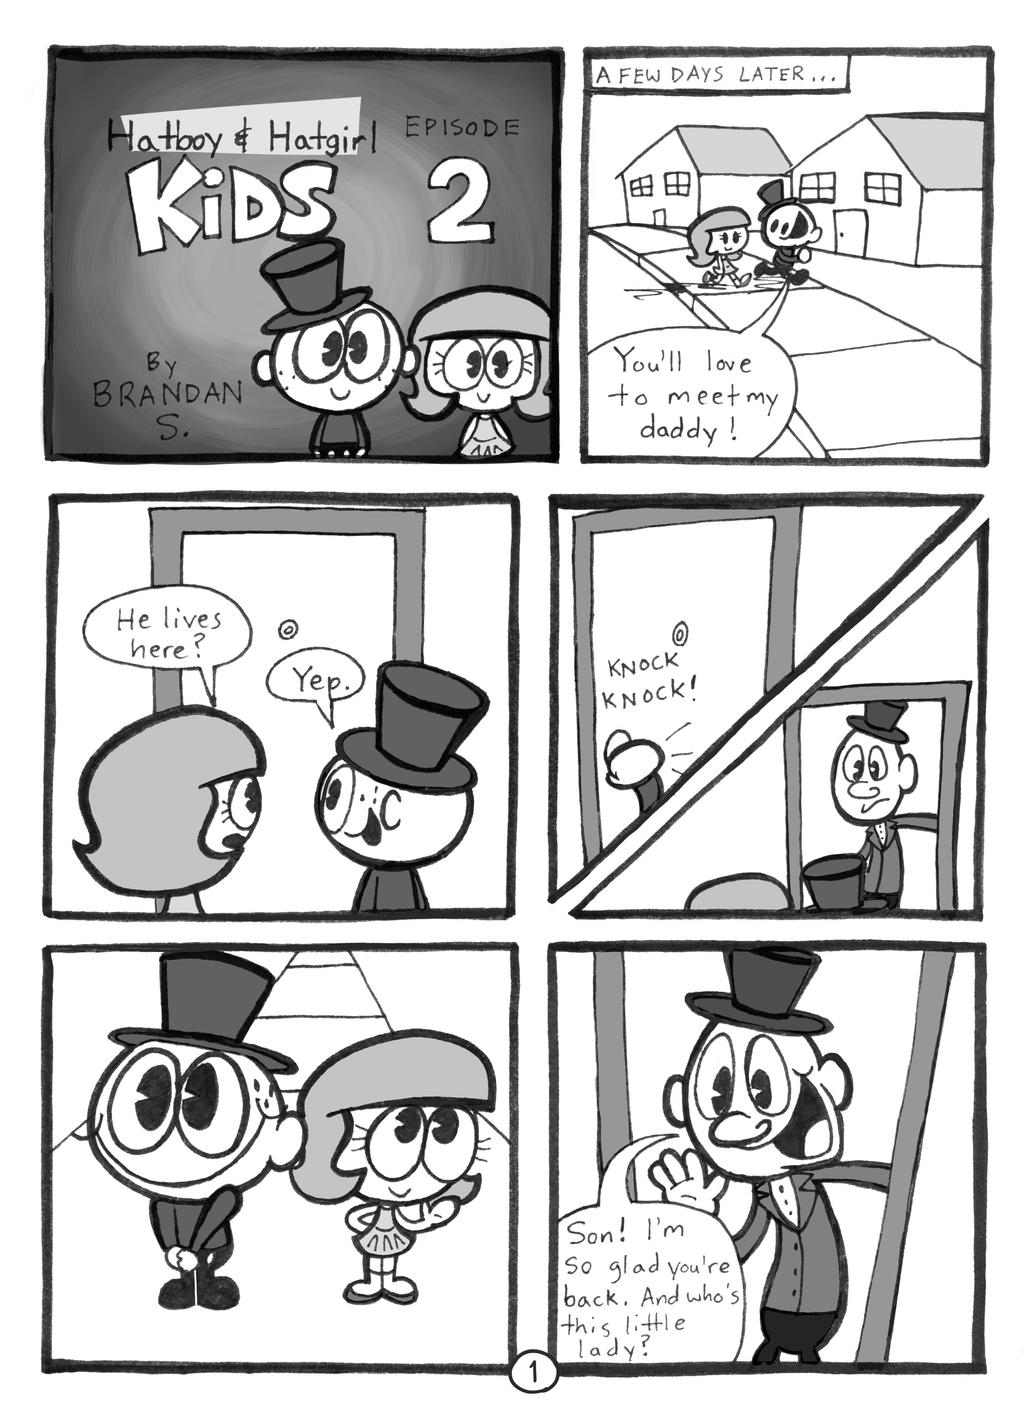 Hatboy and Hatgirl Kids Ep 2 Page 1/5 by rachetcartoons